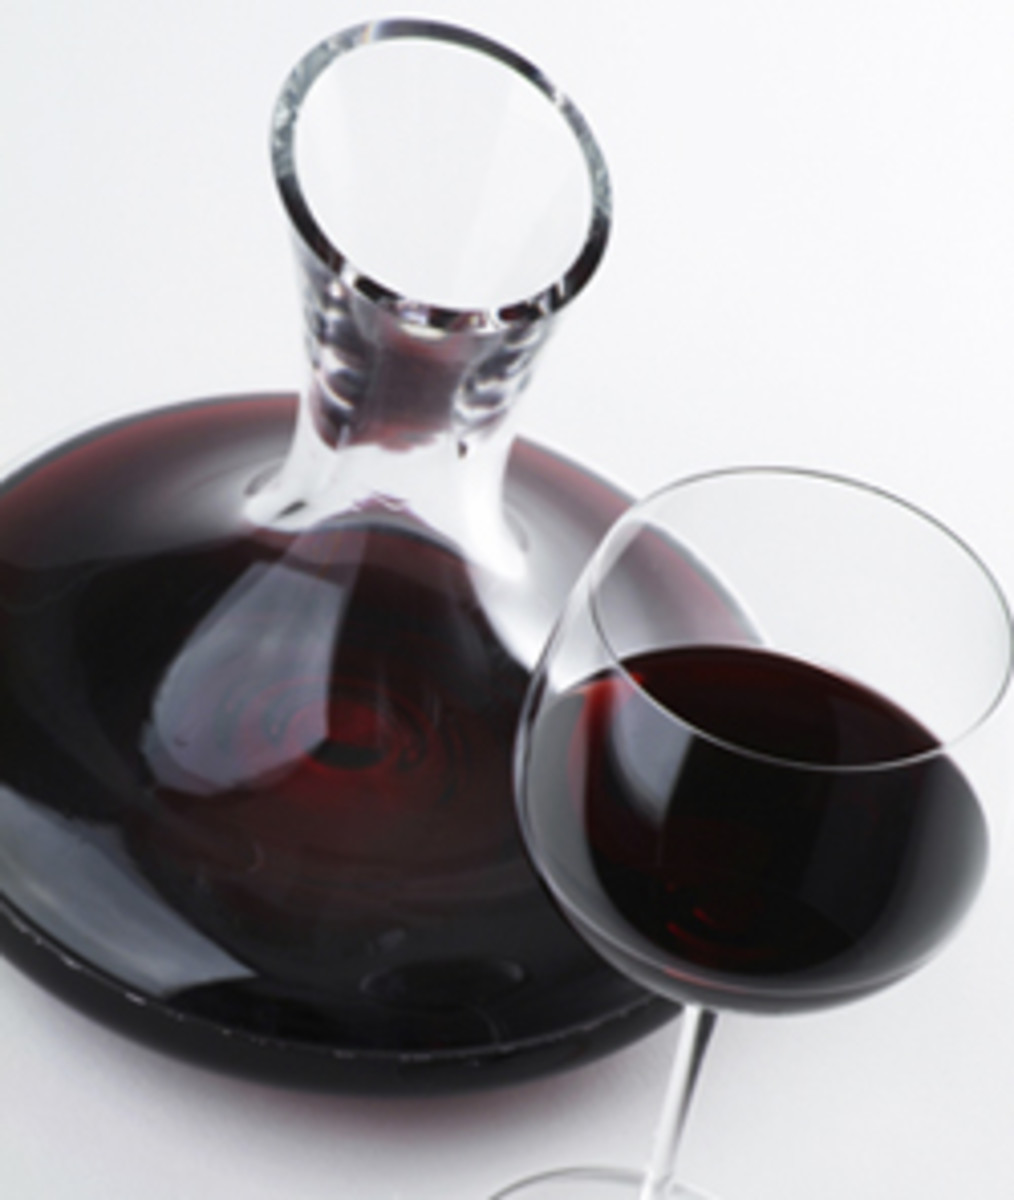 a-guide-on-how-to-buy-and-drink-vintage-and-other-types-of-port